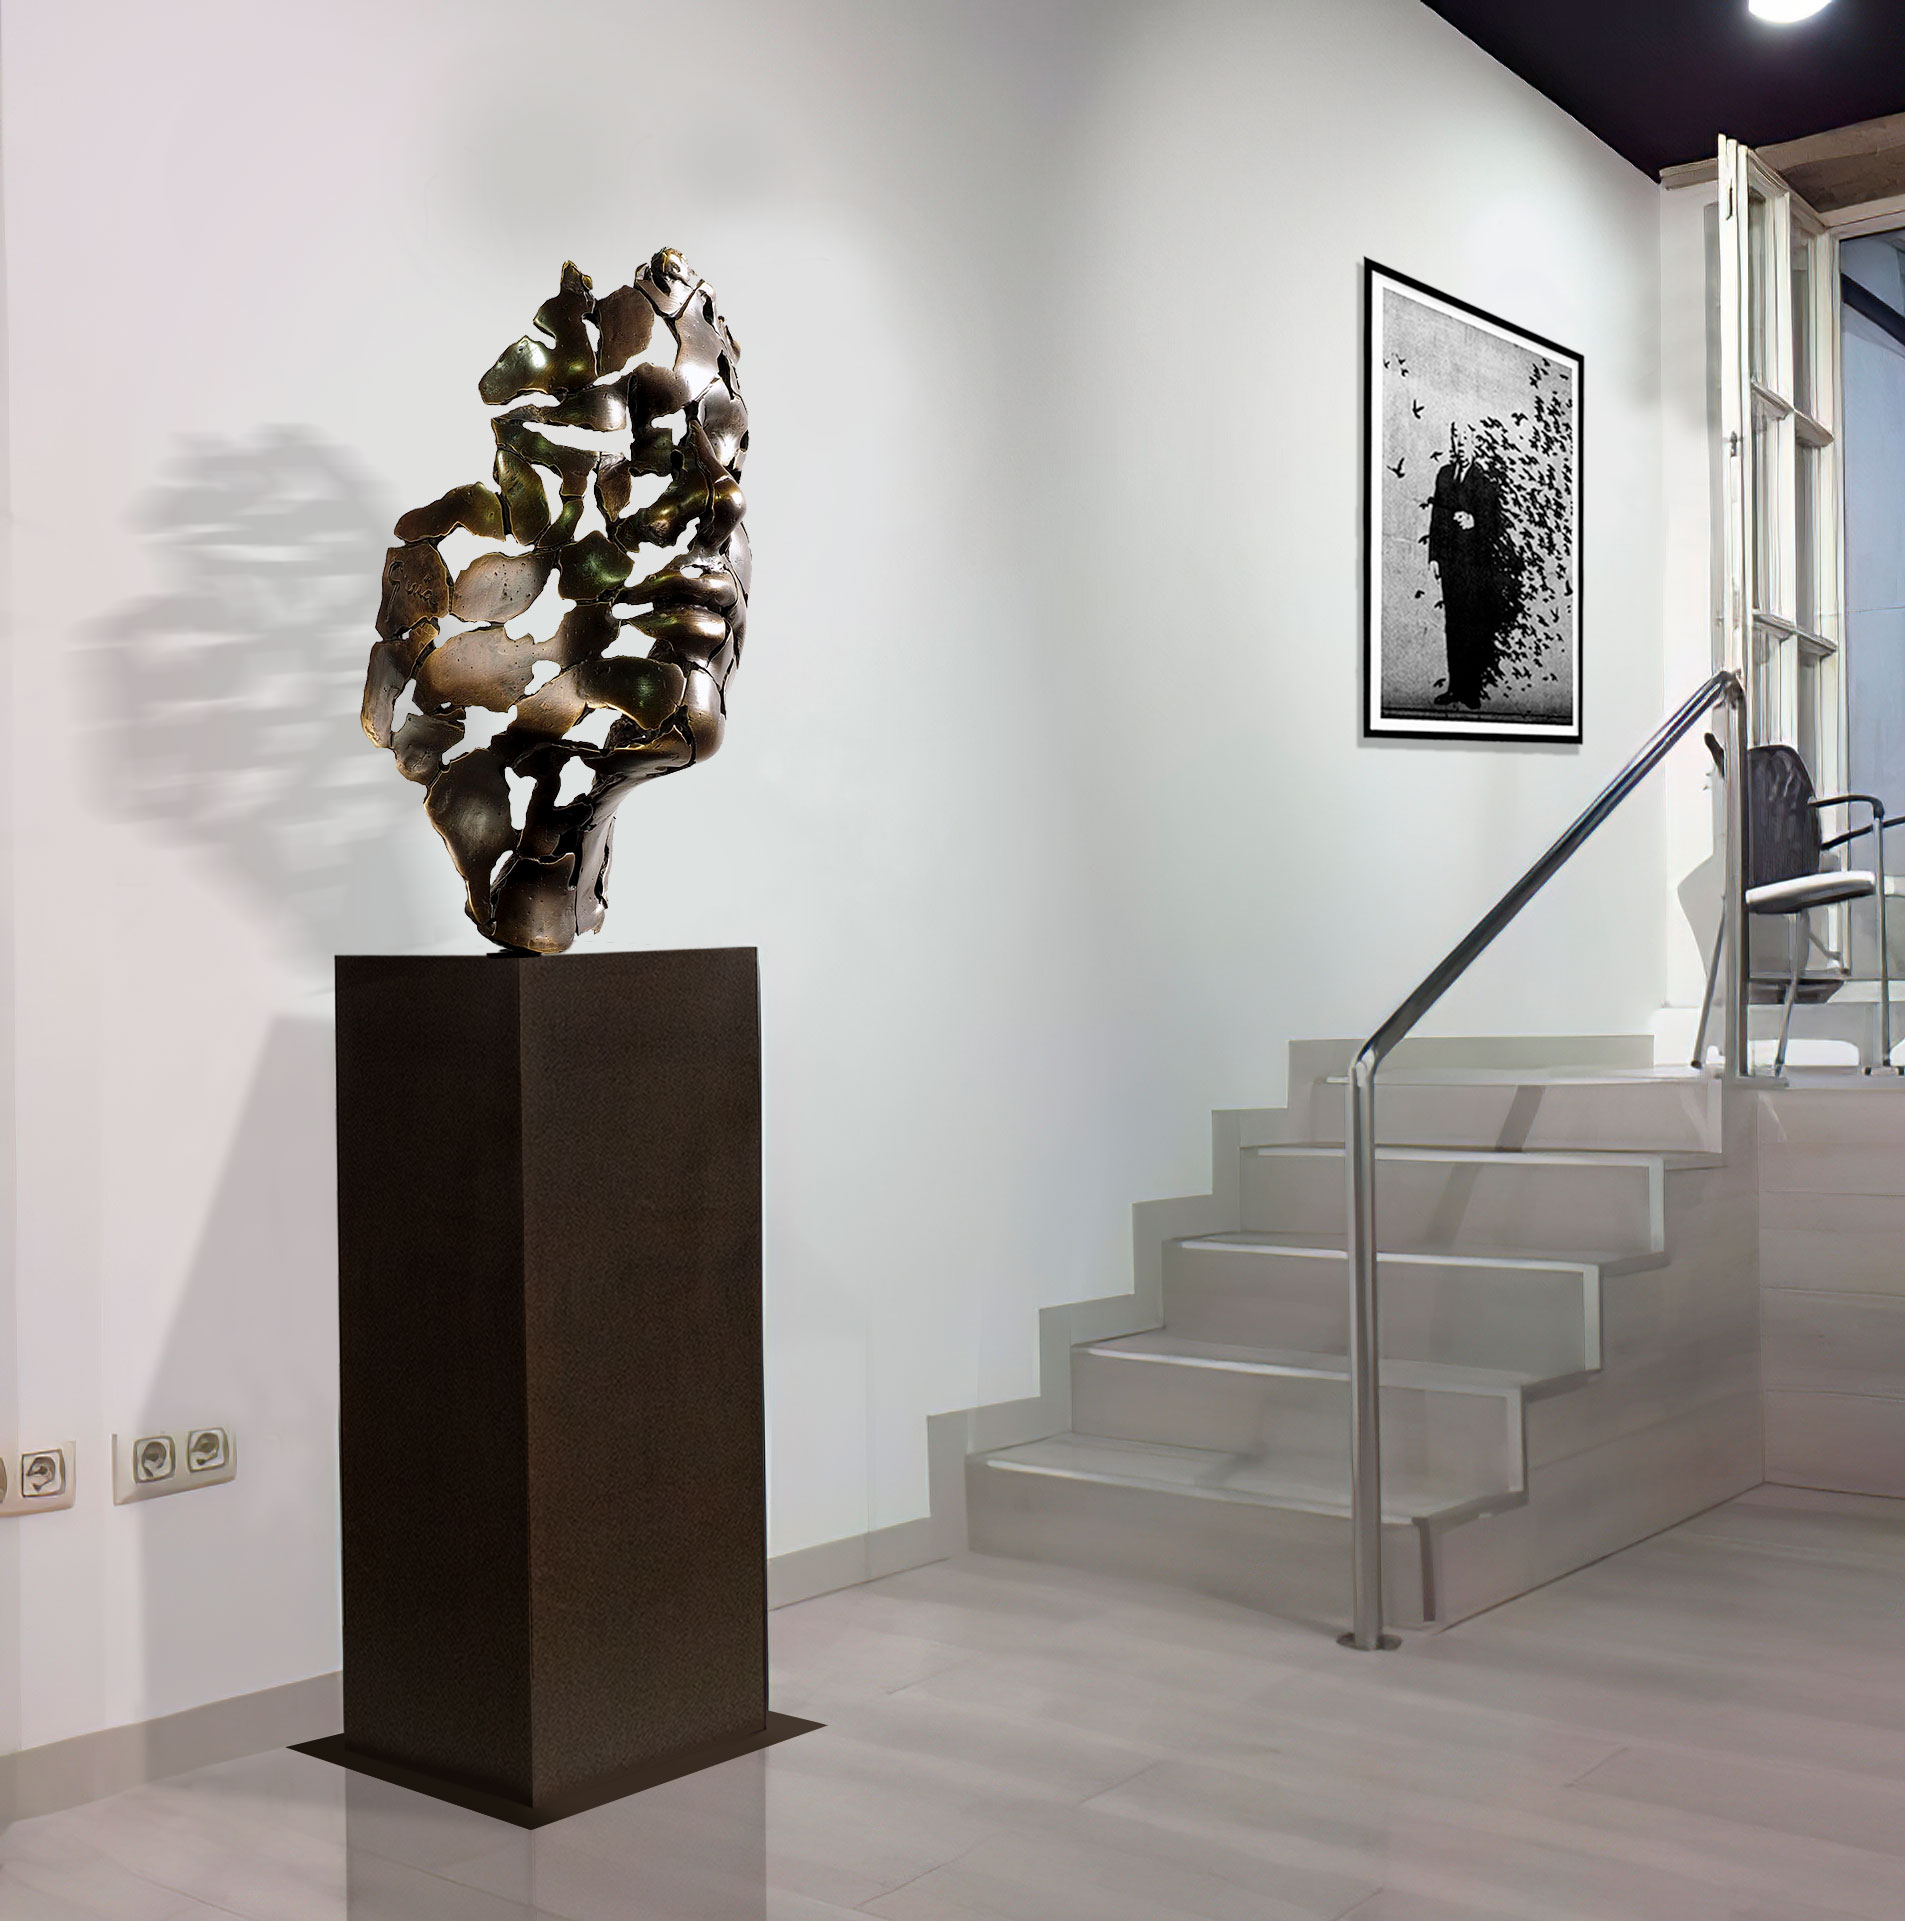 My sculpture essence of youth exhibited in galleries